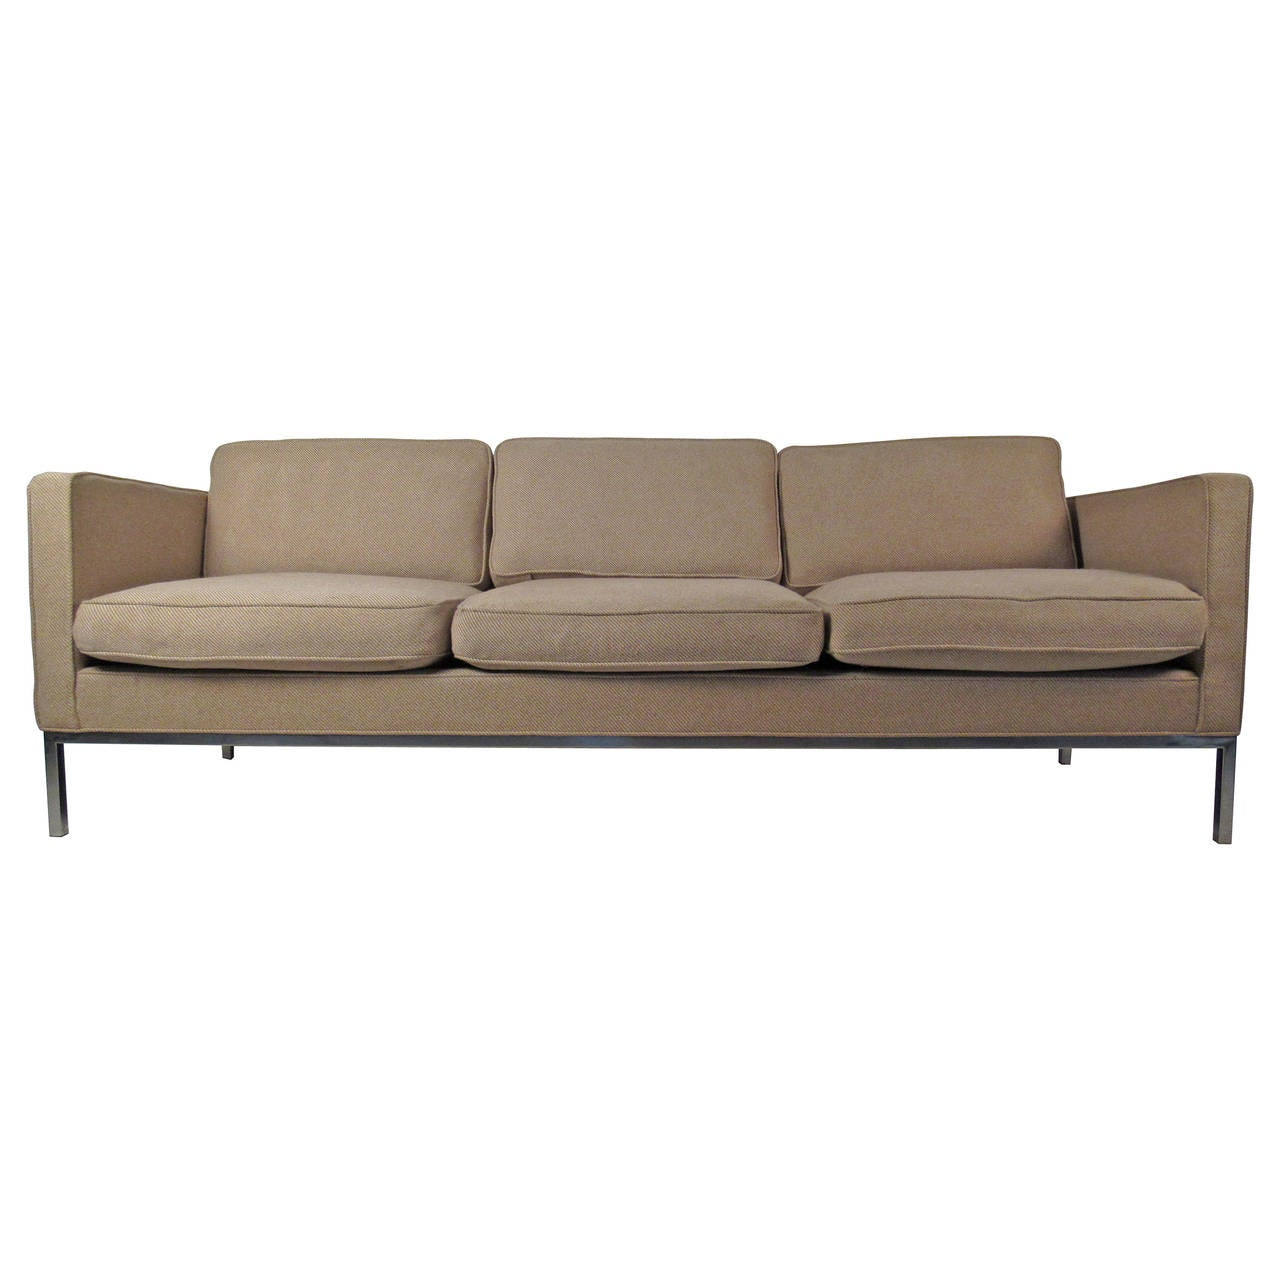 Mid century modern sofa in the style of knoll for sale at for Mid century modern sofas